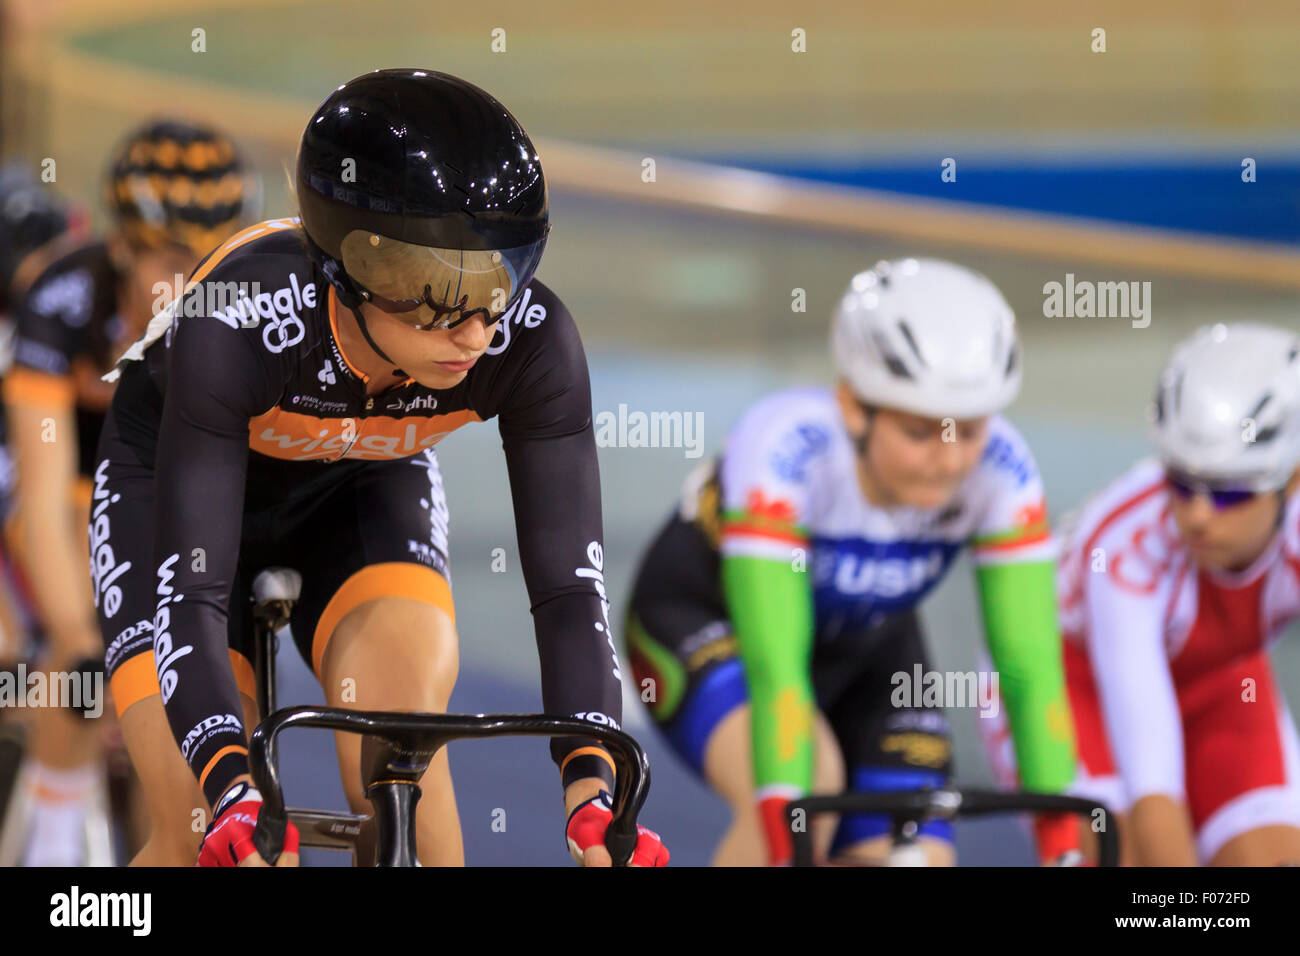 Laura Kenny (Laura Trott) won all six disciplines in the Women's Omnium at the Revolution Series 2014-2015, - Stock Image